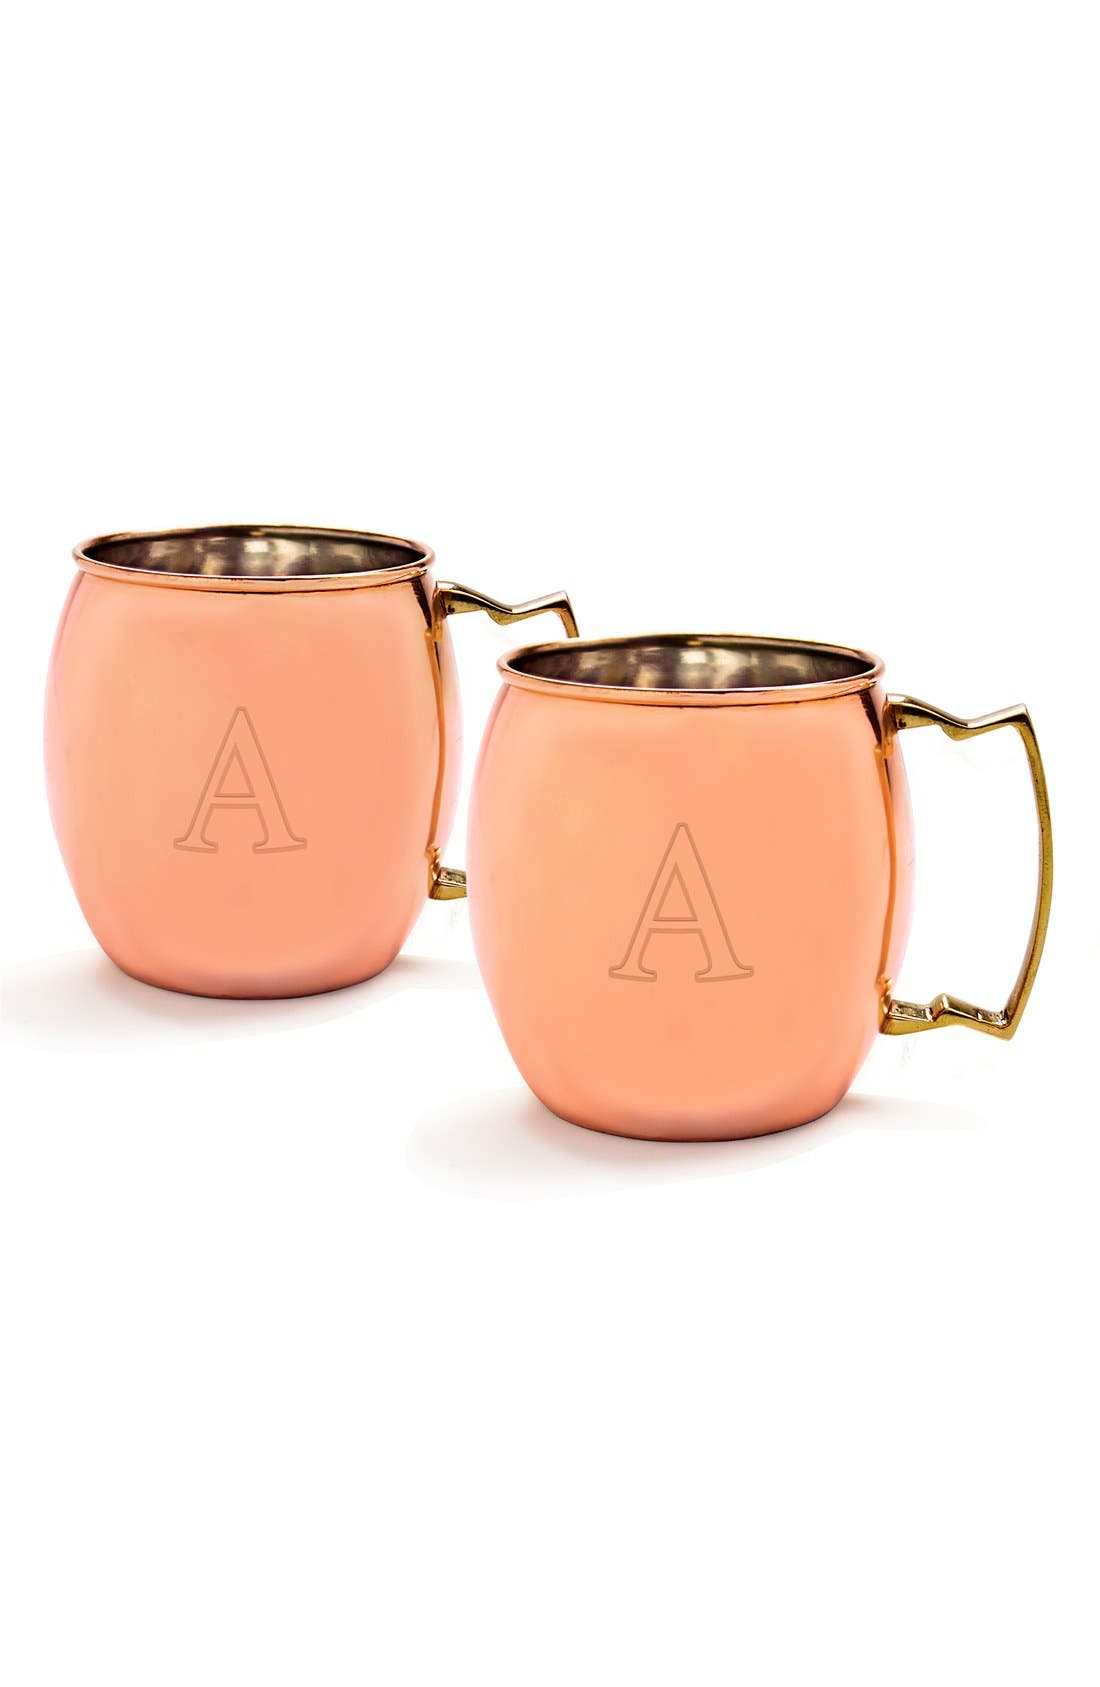 Cathy's Concepts Monogram Moscow Mule Copper Mugs (Set of 2)